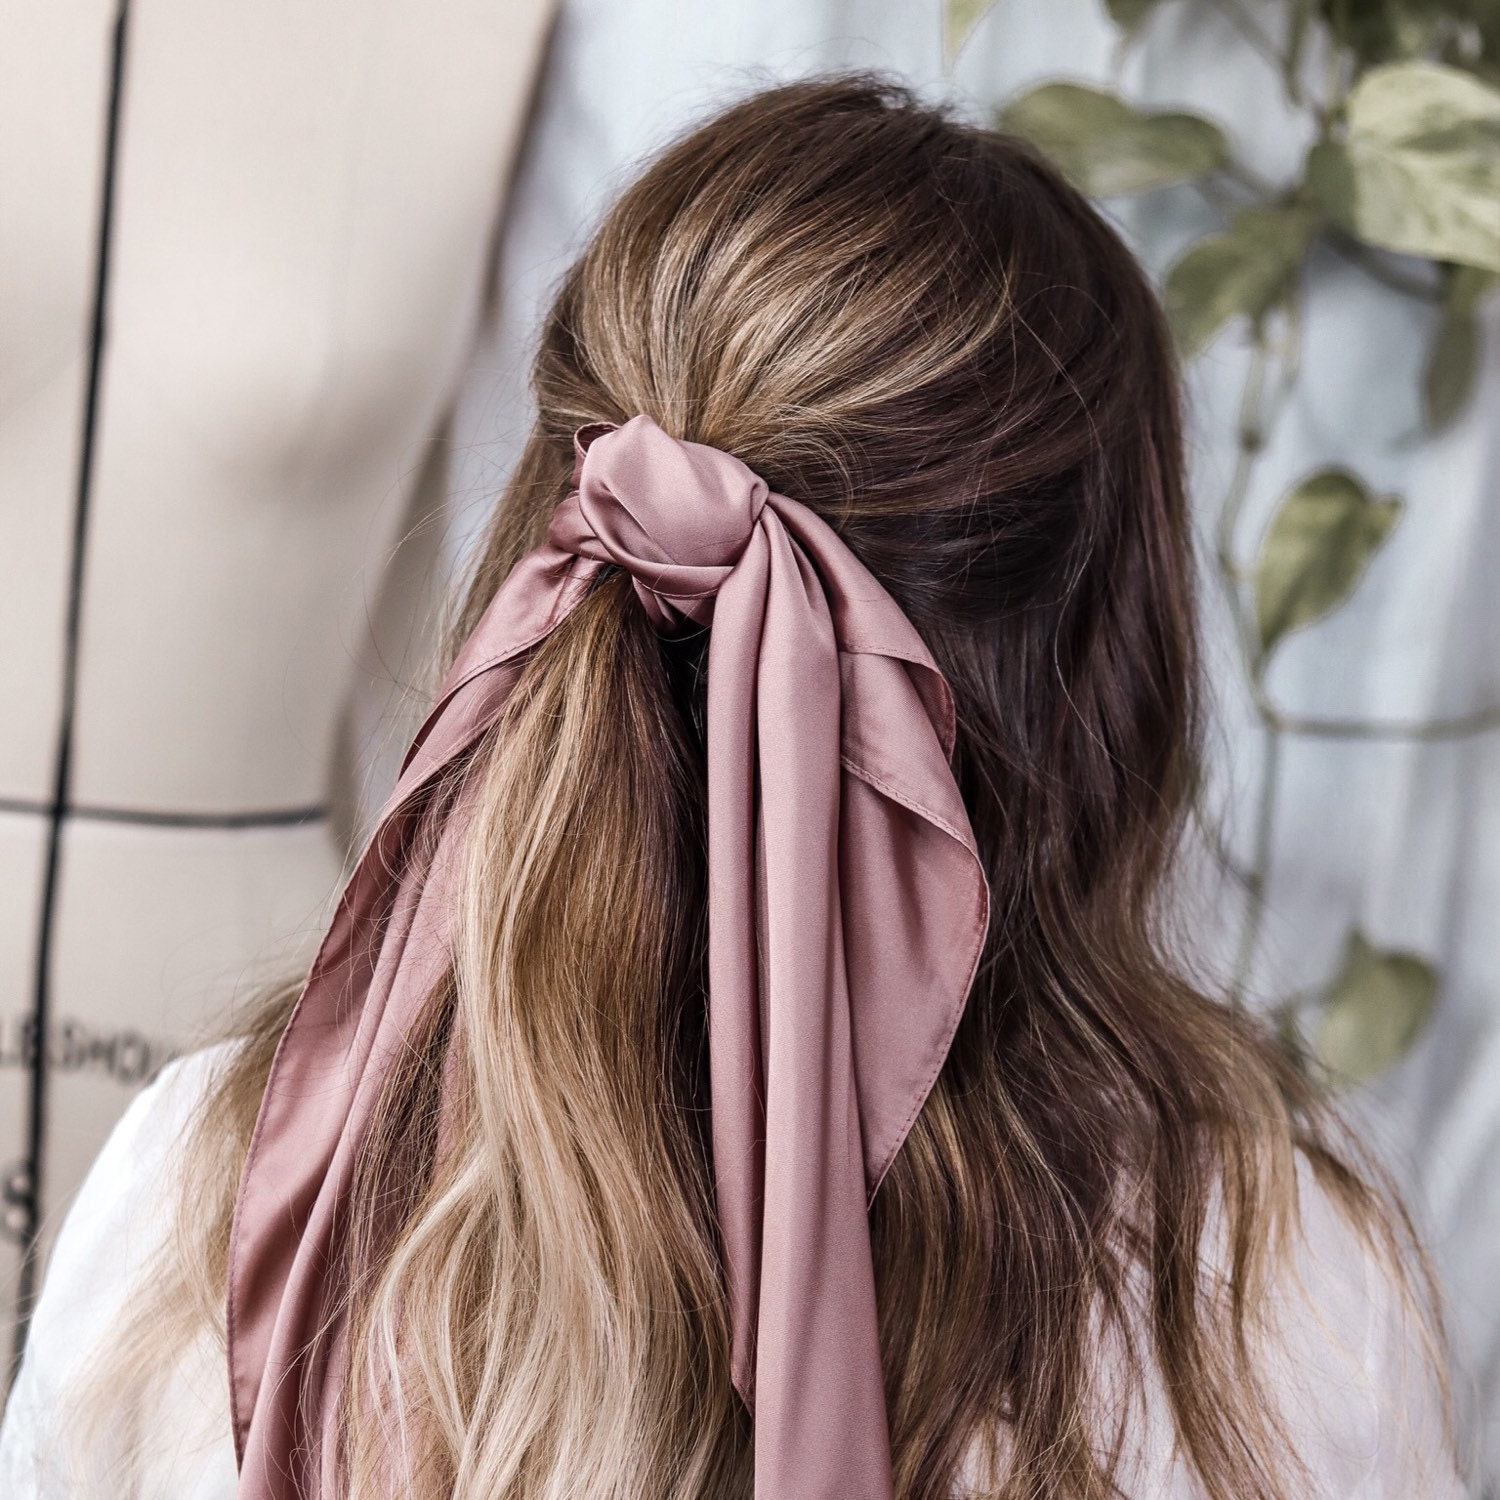 Bride To Be Gift Luxury Silk Hair /& Neck Scarf Head Band Bridal Hair Scarf Silk Scarf Headband Hair Accessories